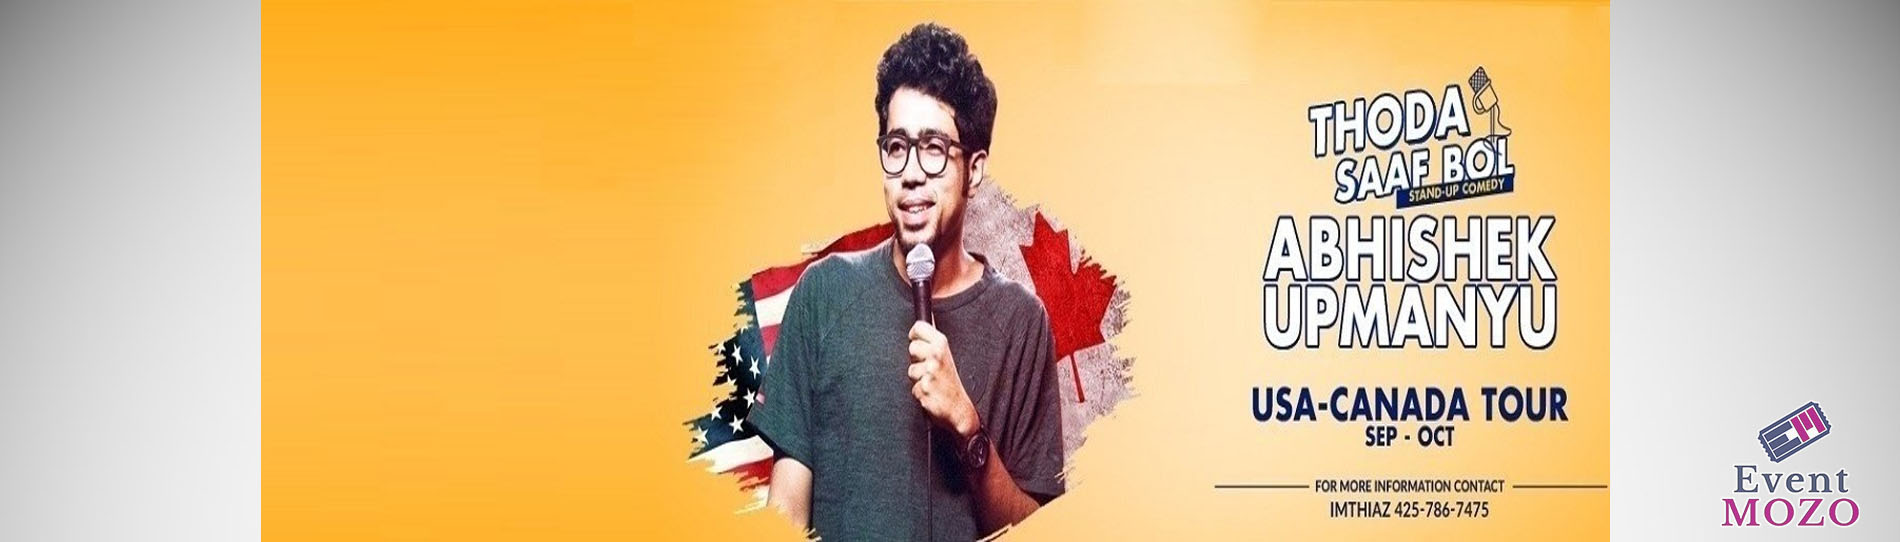 EventMozo Abhishek Upmanyu Standup Comedy Live in Chicago 2018